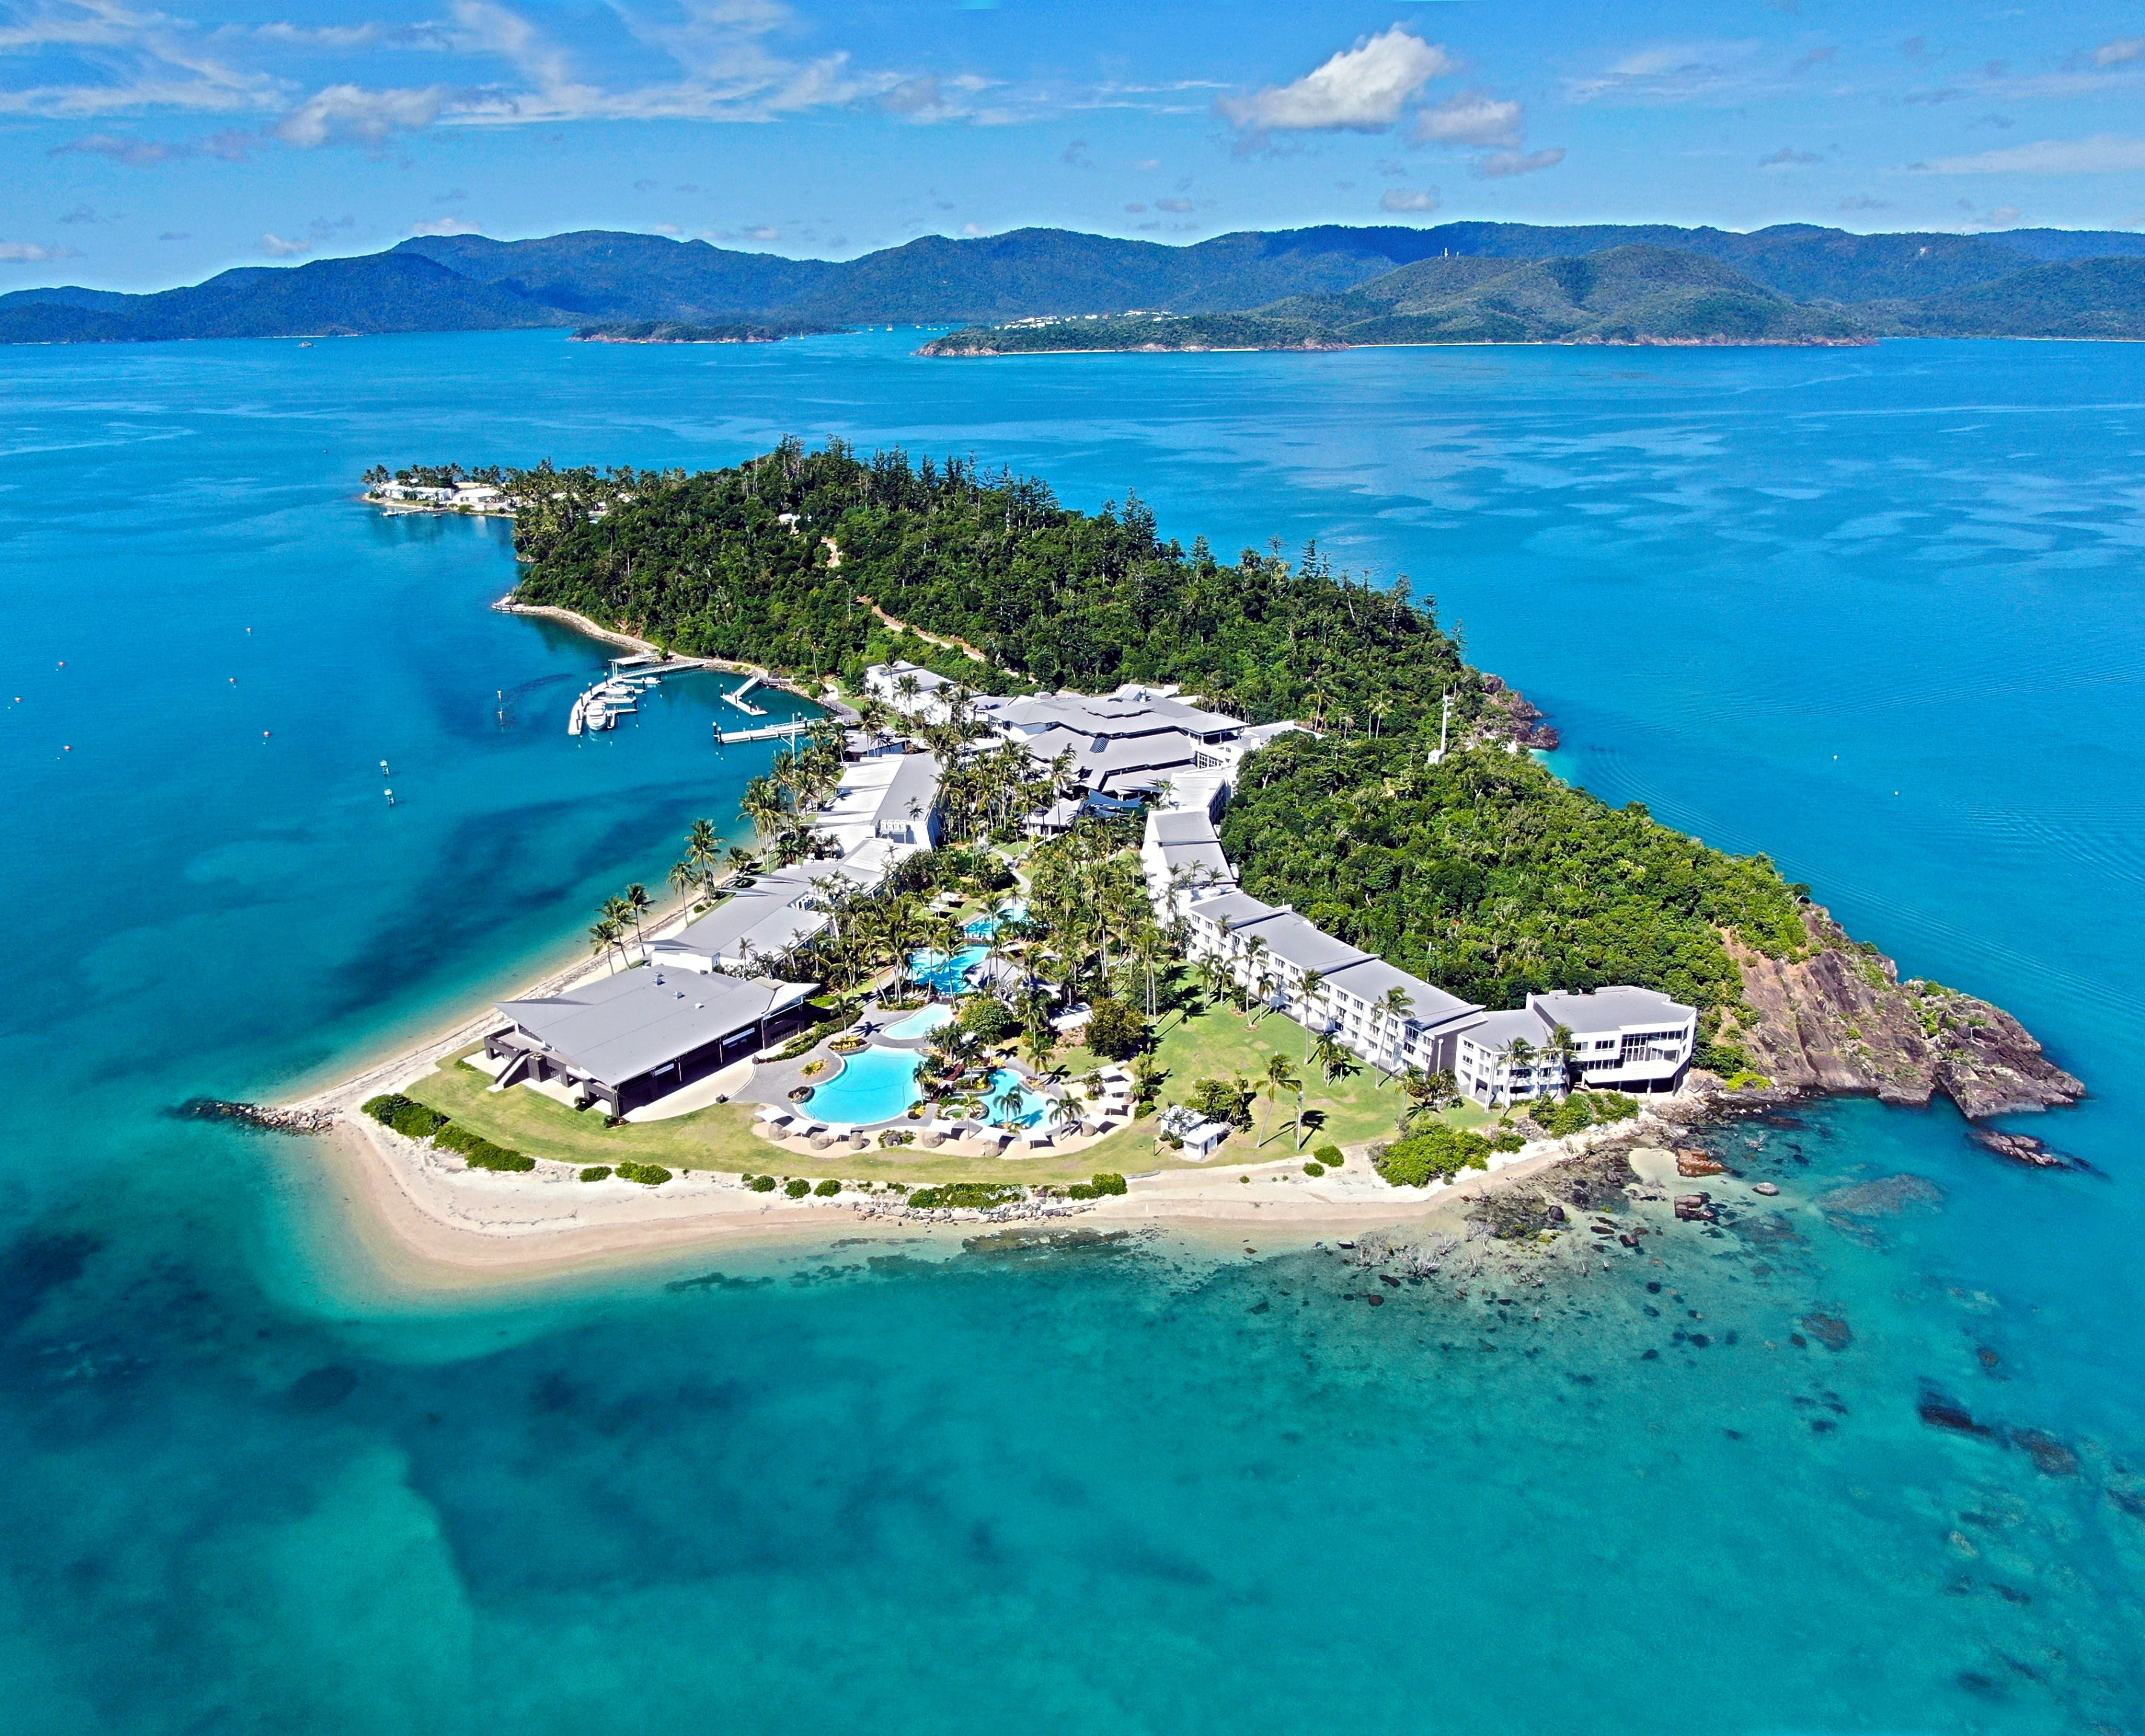 Daydream Island Resort and Living Reef - Accommodation Cairns